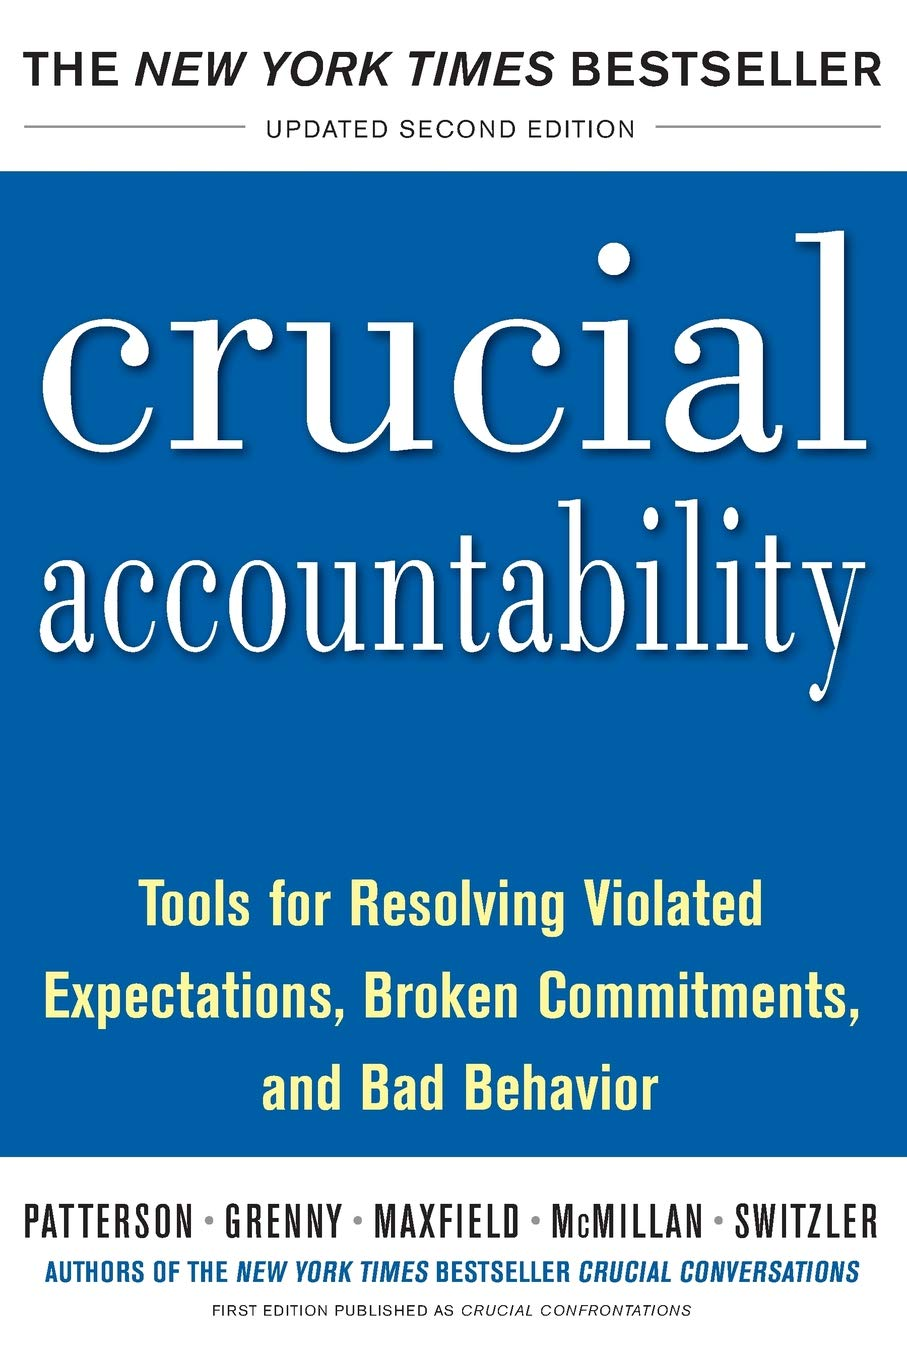 Crucial Accountability: Tools for Resolving Violated Expectations, Broken Commitments, and Bad Behavior, Second Edition…